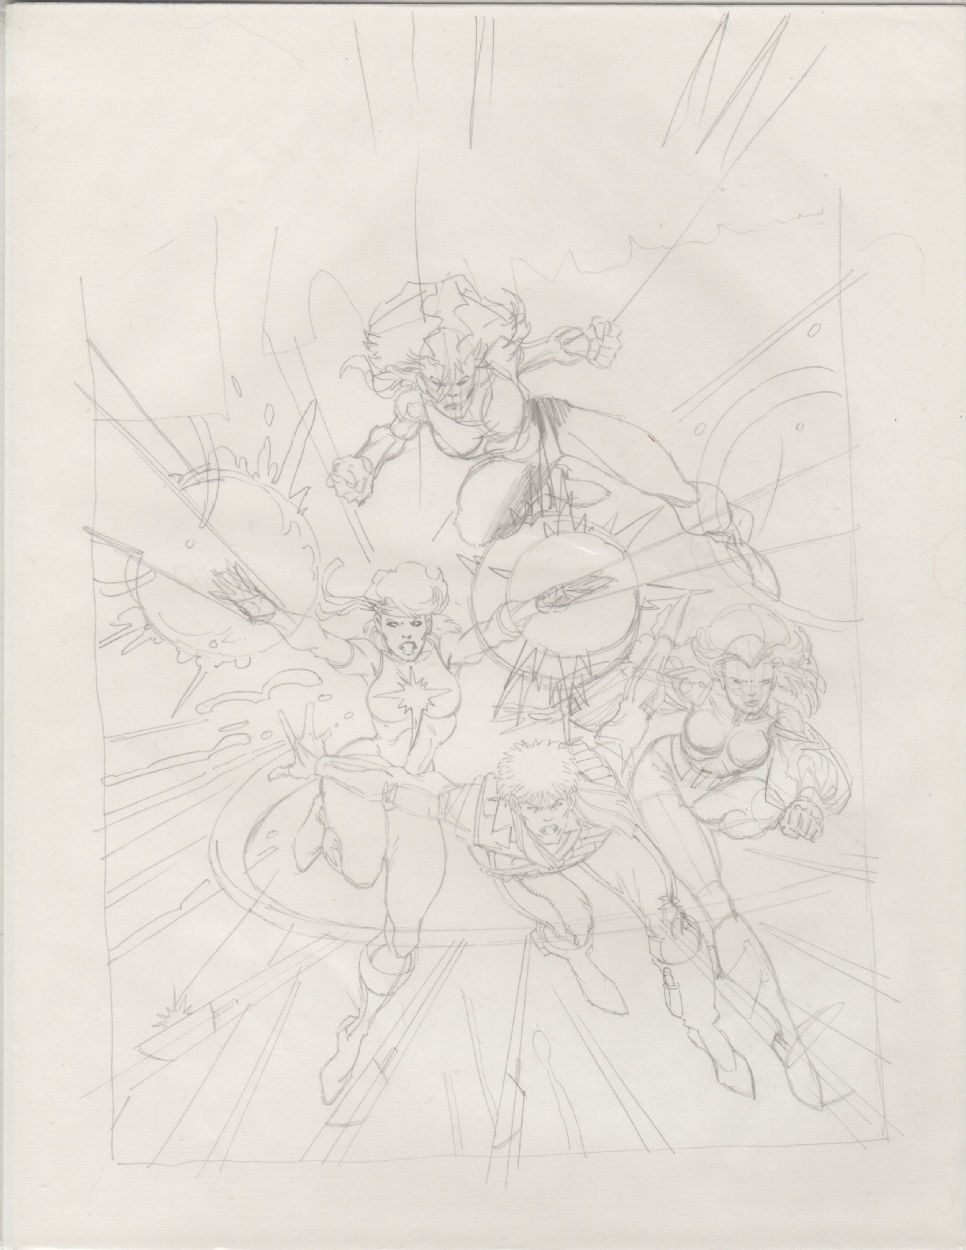 Uncanny X-men 218 Cover prelim by Arthur Adams featuring Longshot, Dazzler, Rogue and Psylocke Comic Art